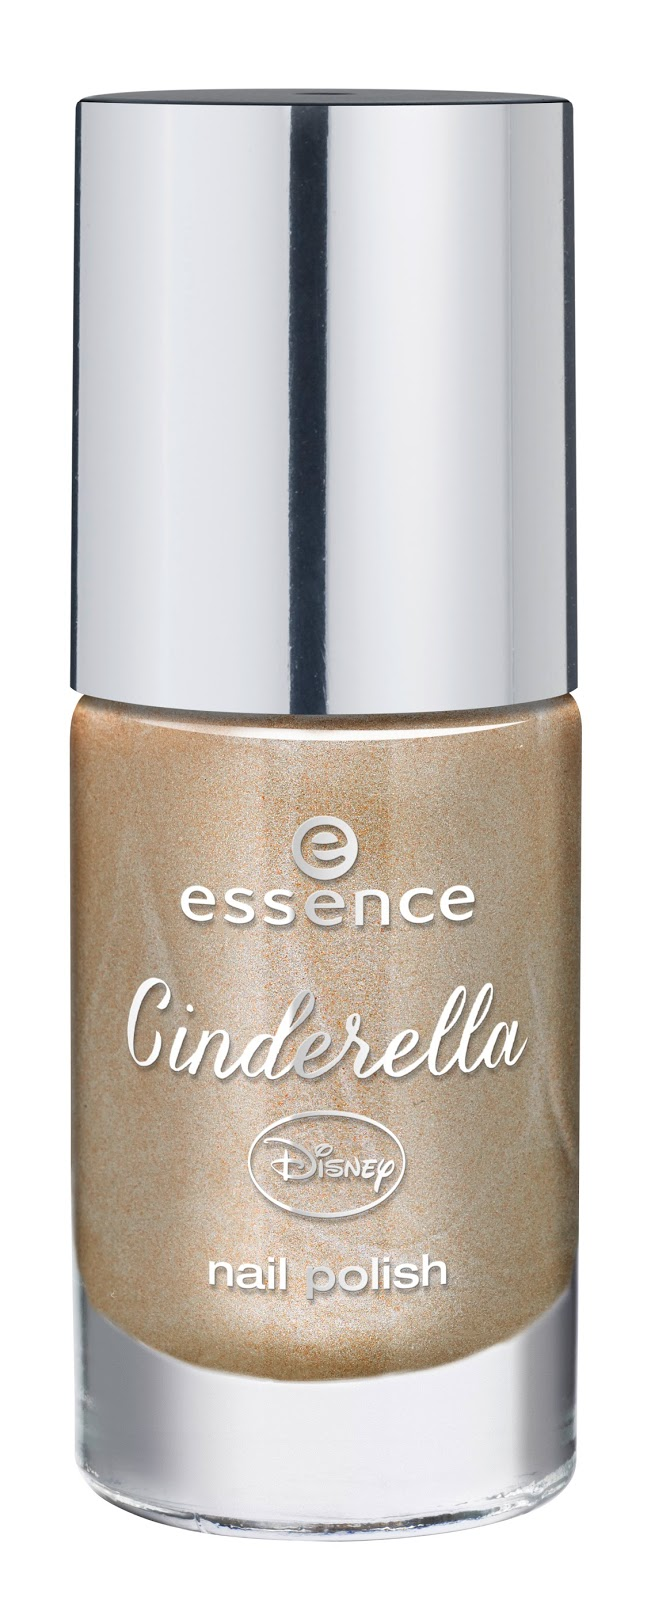 essence cinderella – nail polish, 04 watch out lady tremaine!